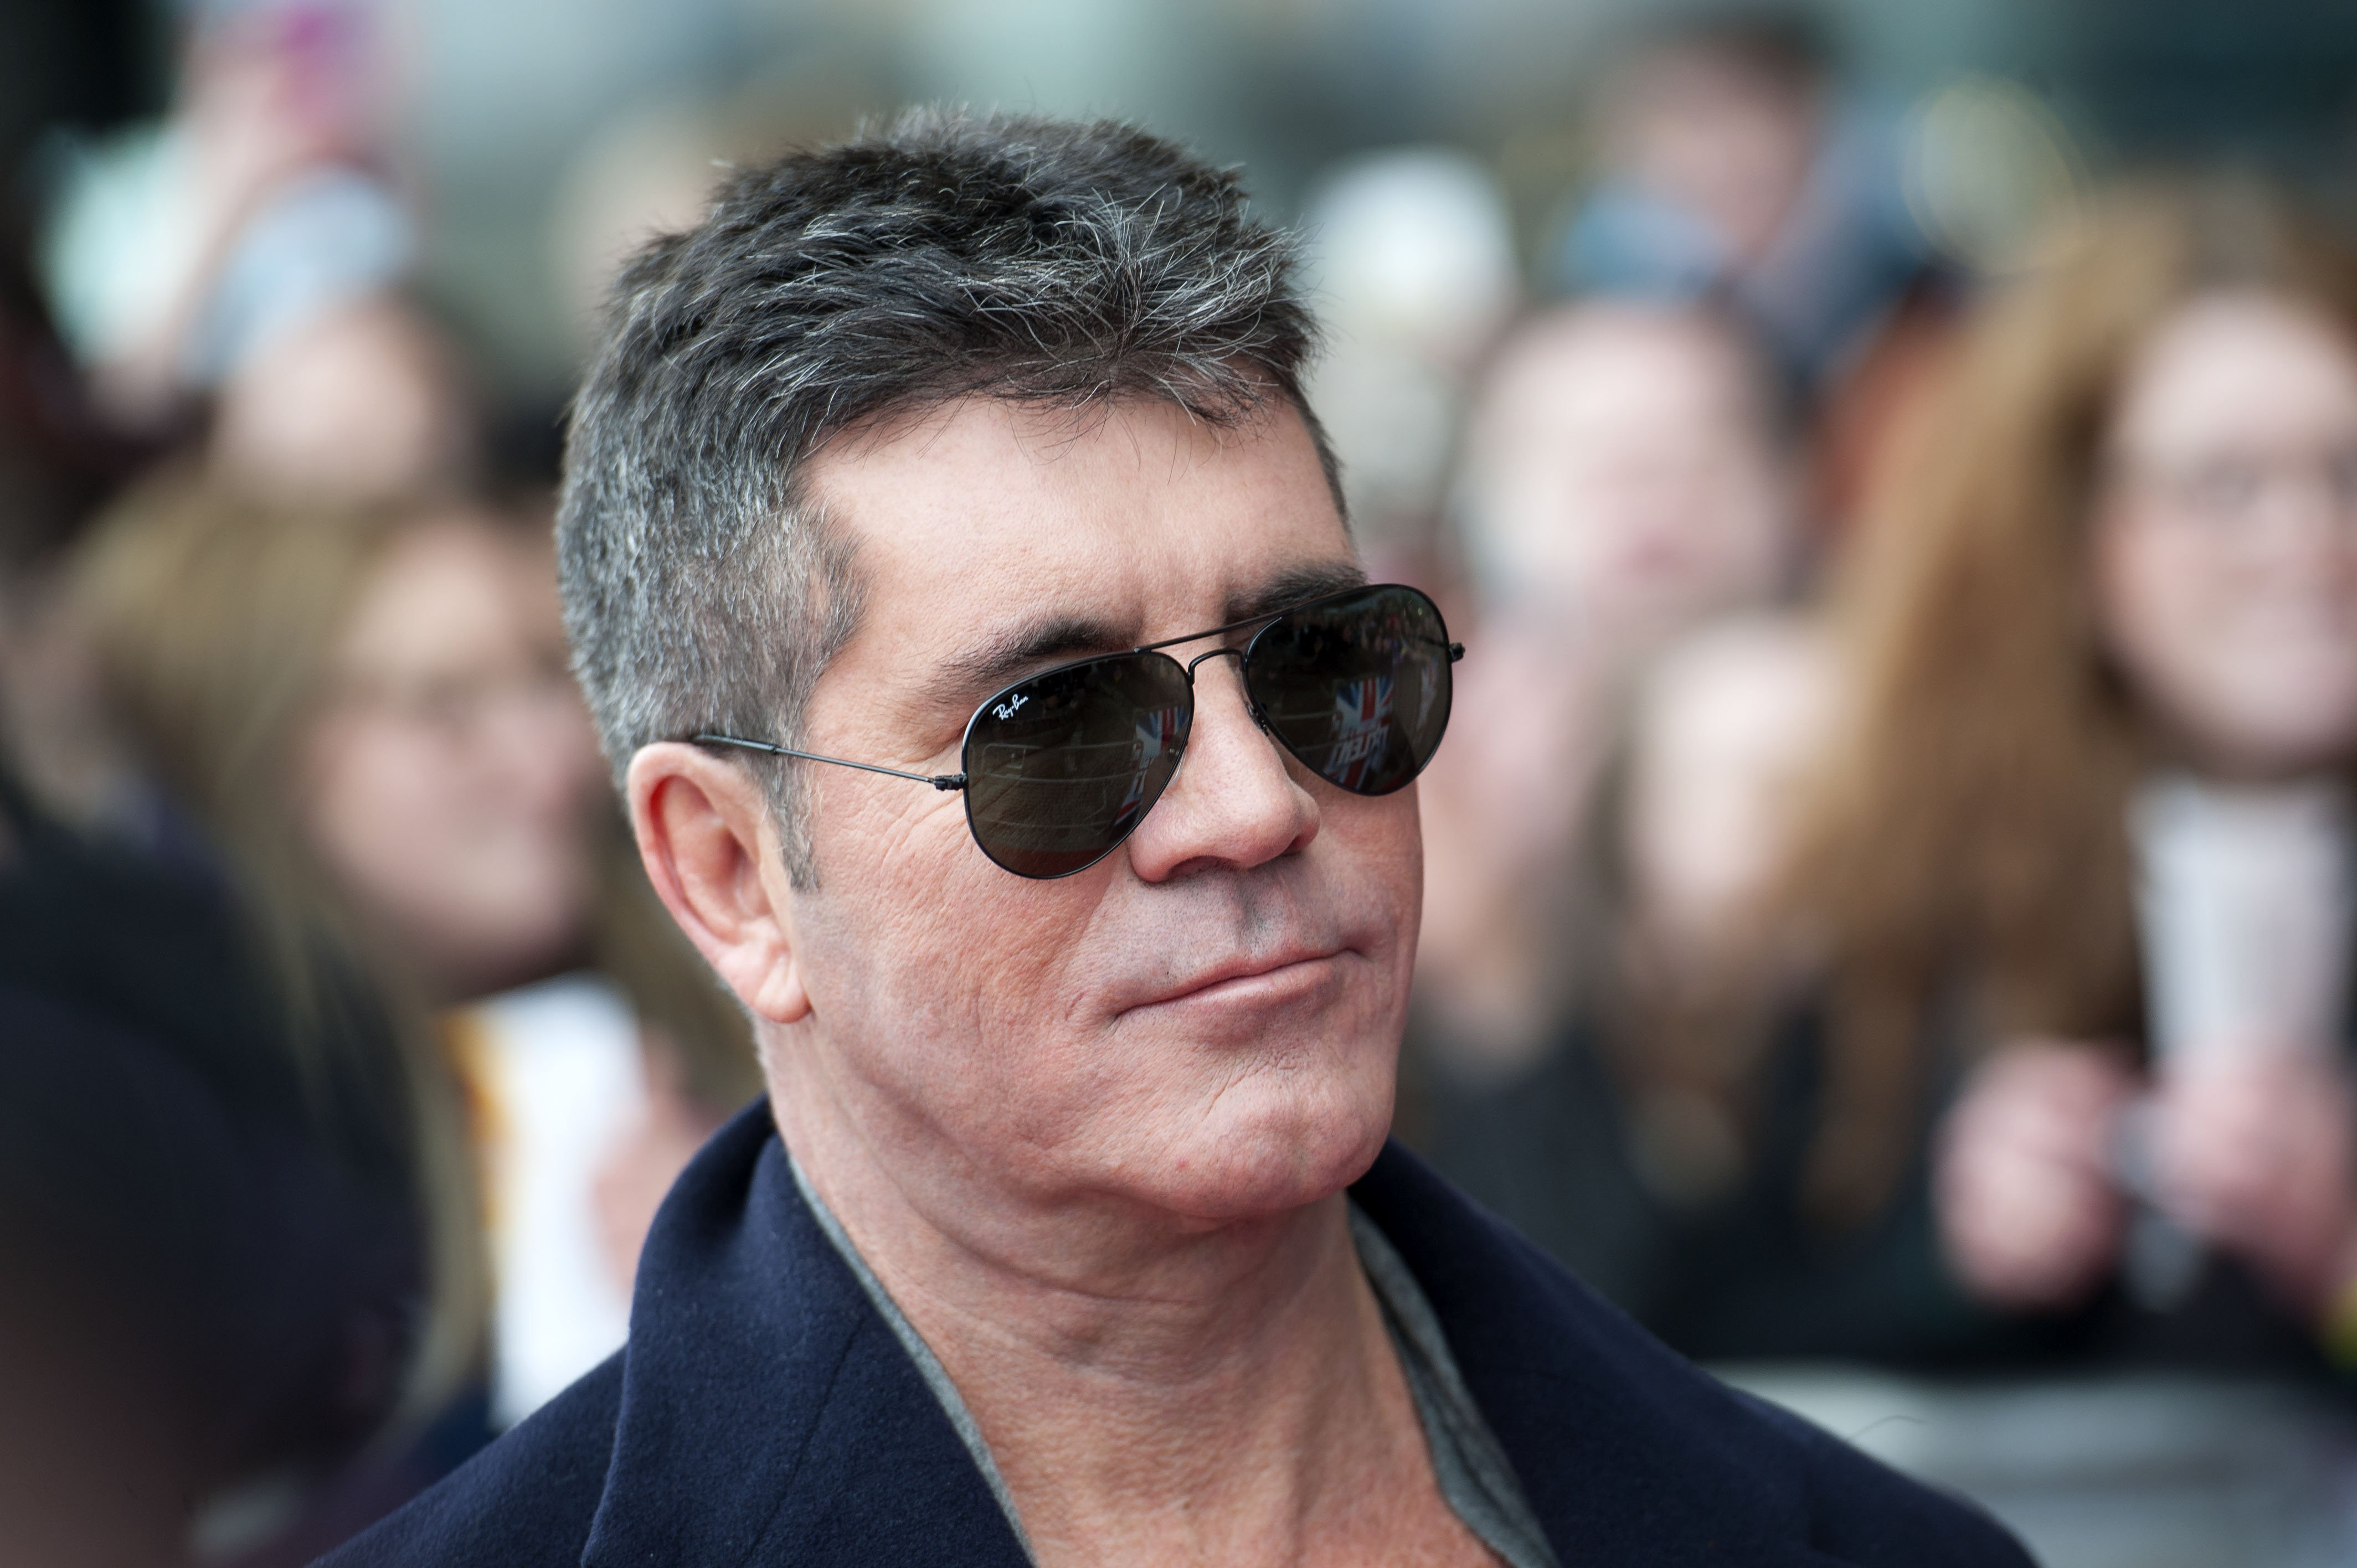 Simon Cowell arrives at the Britain's Got Talent Cardiff auditions on January 23, 2014, in Cardiff, Wales. | Source: Getty Images.